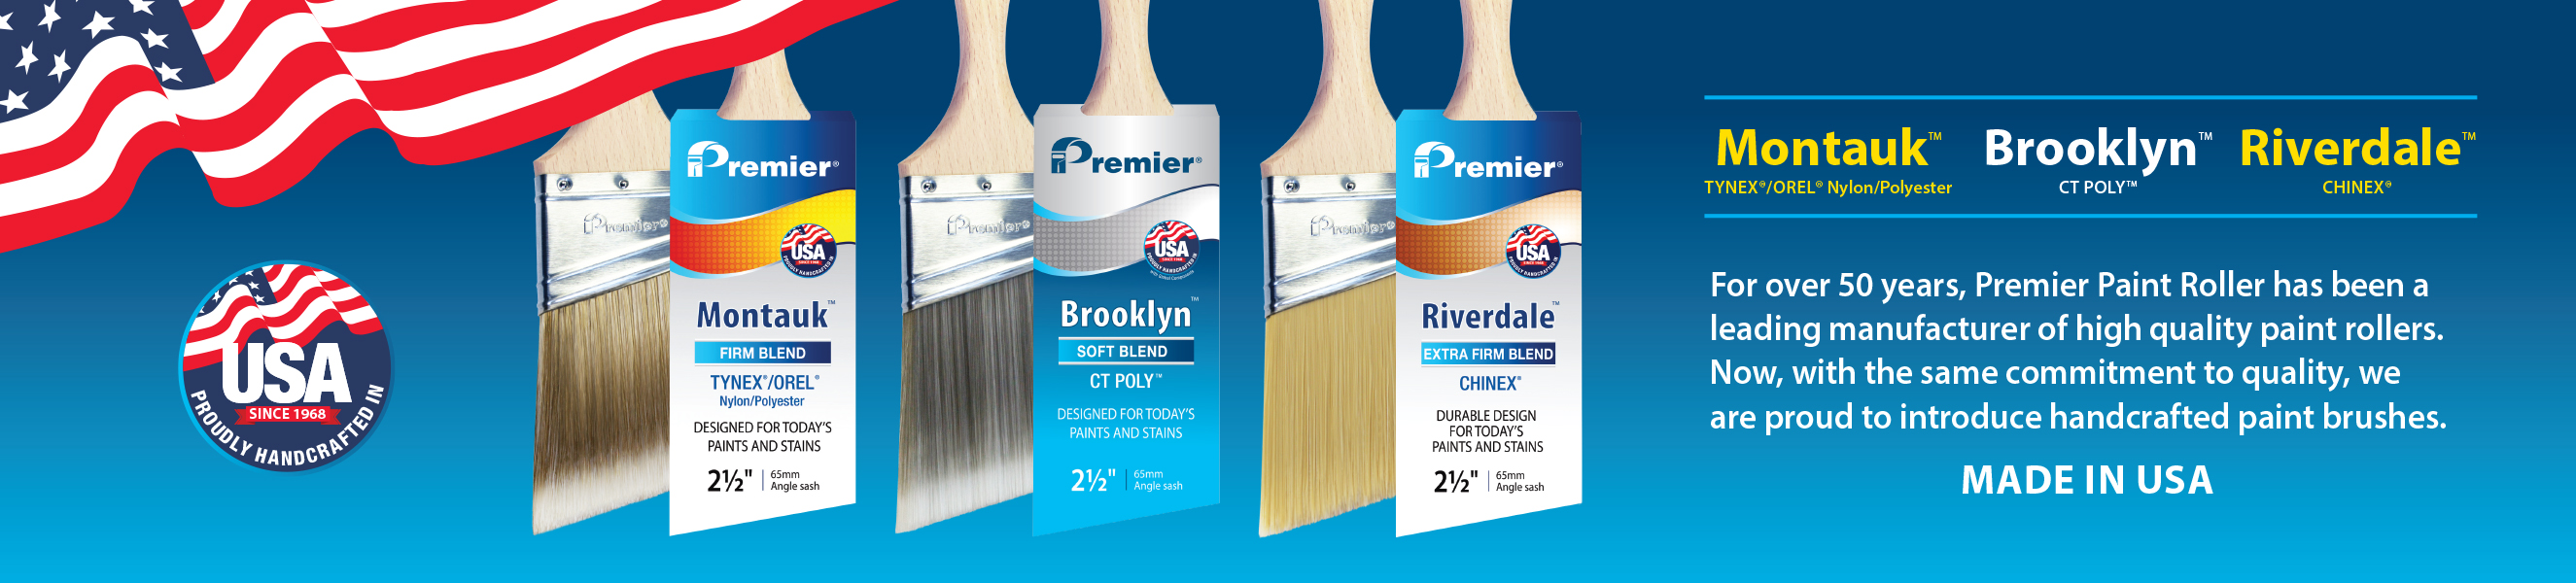 Home Premier Paint Roller Co Llc